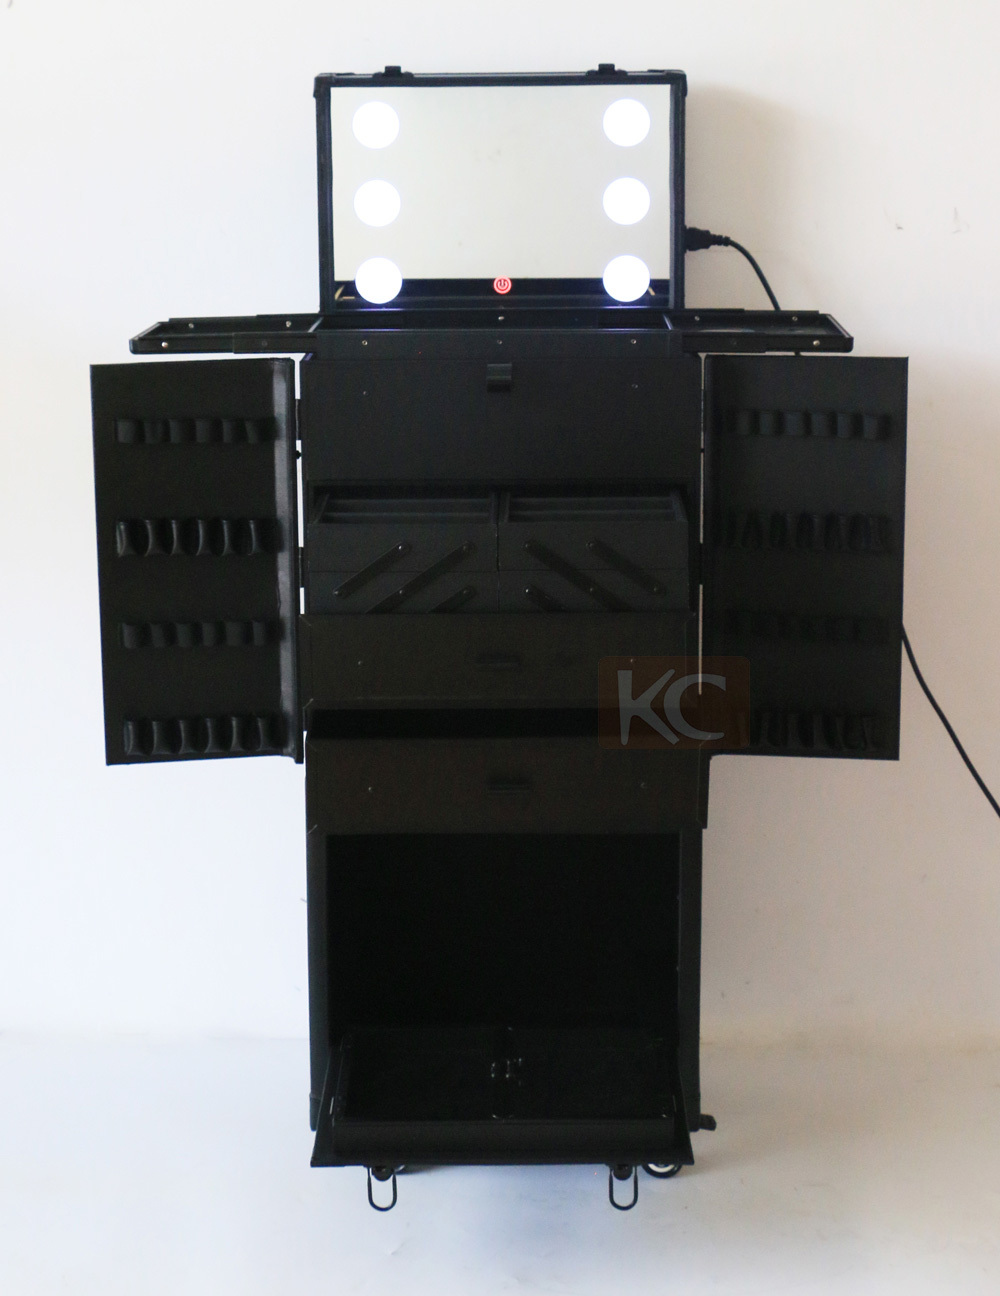 Aluminum Hair Scissors Organizer Box with Trolley and Plastic Drawers, Made of Black PVC Leather with trays and draws inside